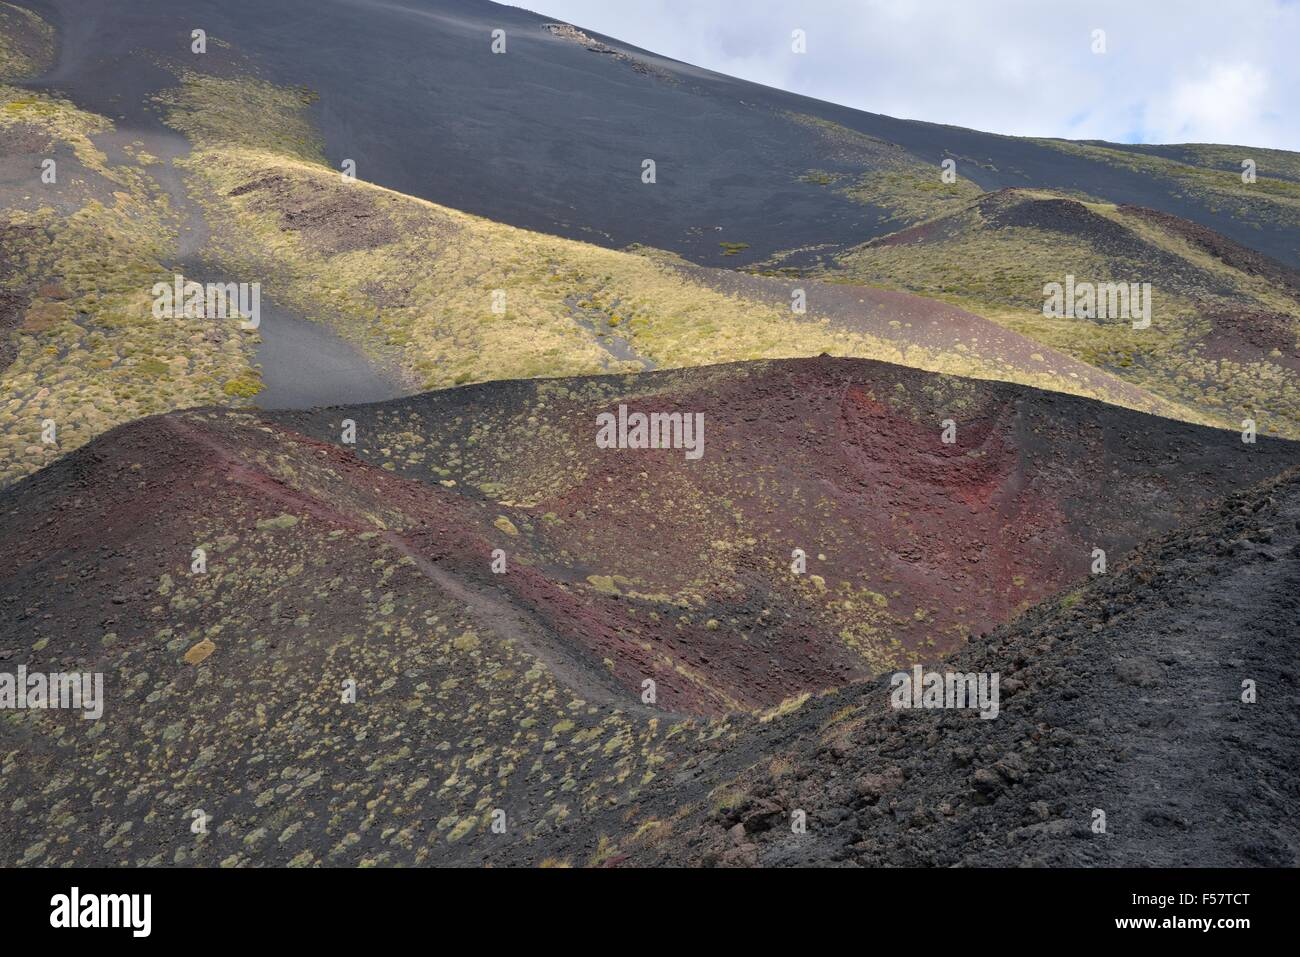 Side crater Monti Calcarazzi, Mount Etna, Sicily, Italy - Stock Image